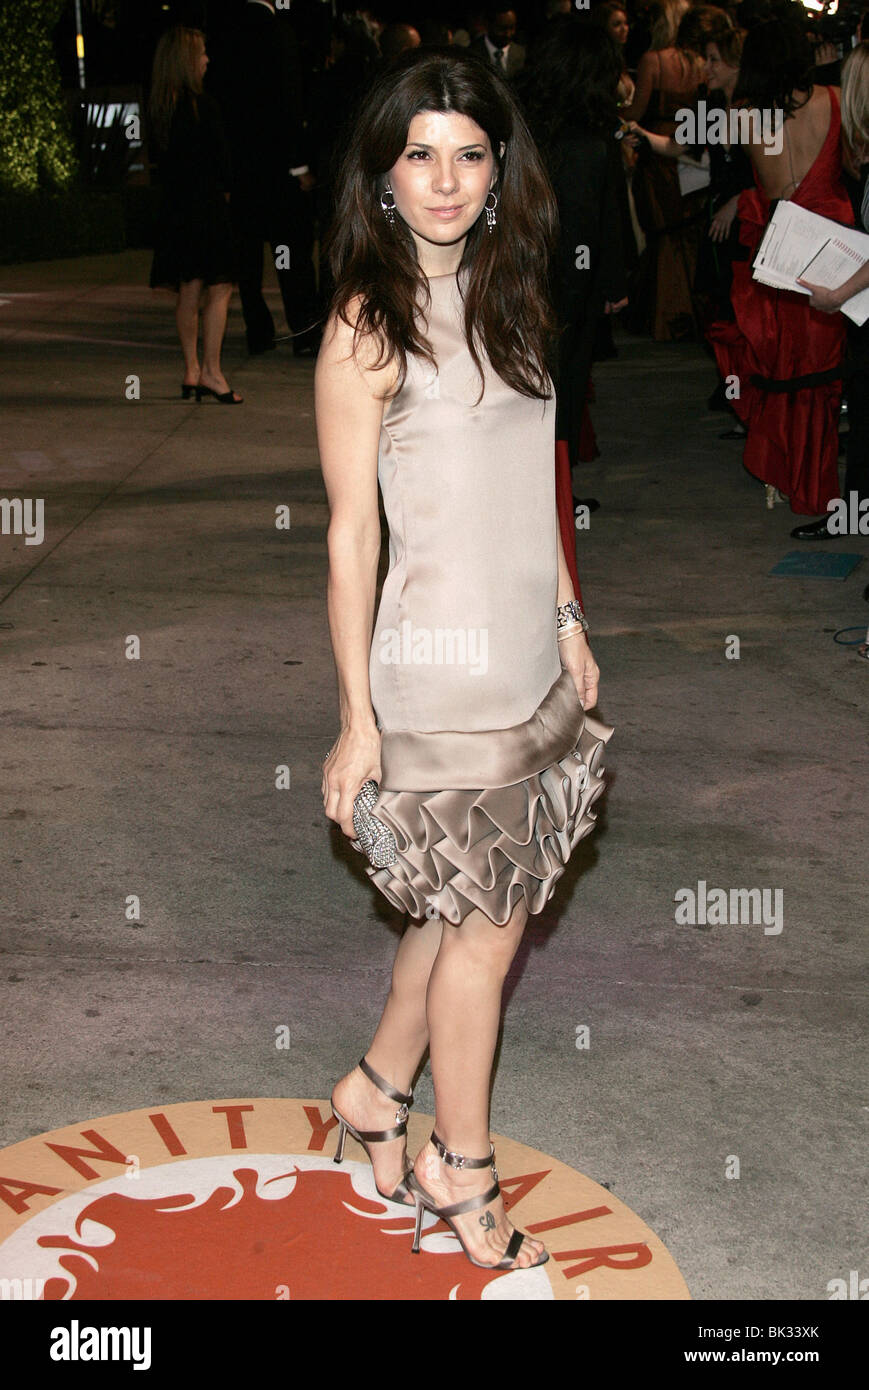 MARISA TOMEI VANITY FAIR PARTY 2007 MORTONS HOLLYWOOD LOS ANGELES USA 25 February 2007 - Stock Image